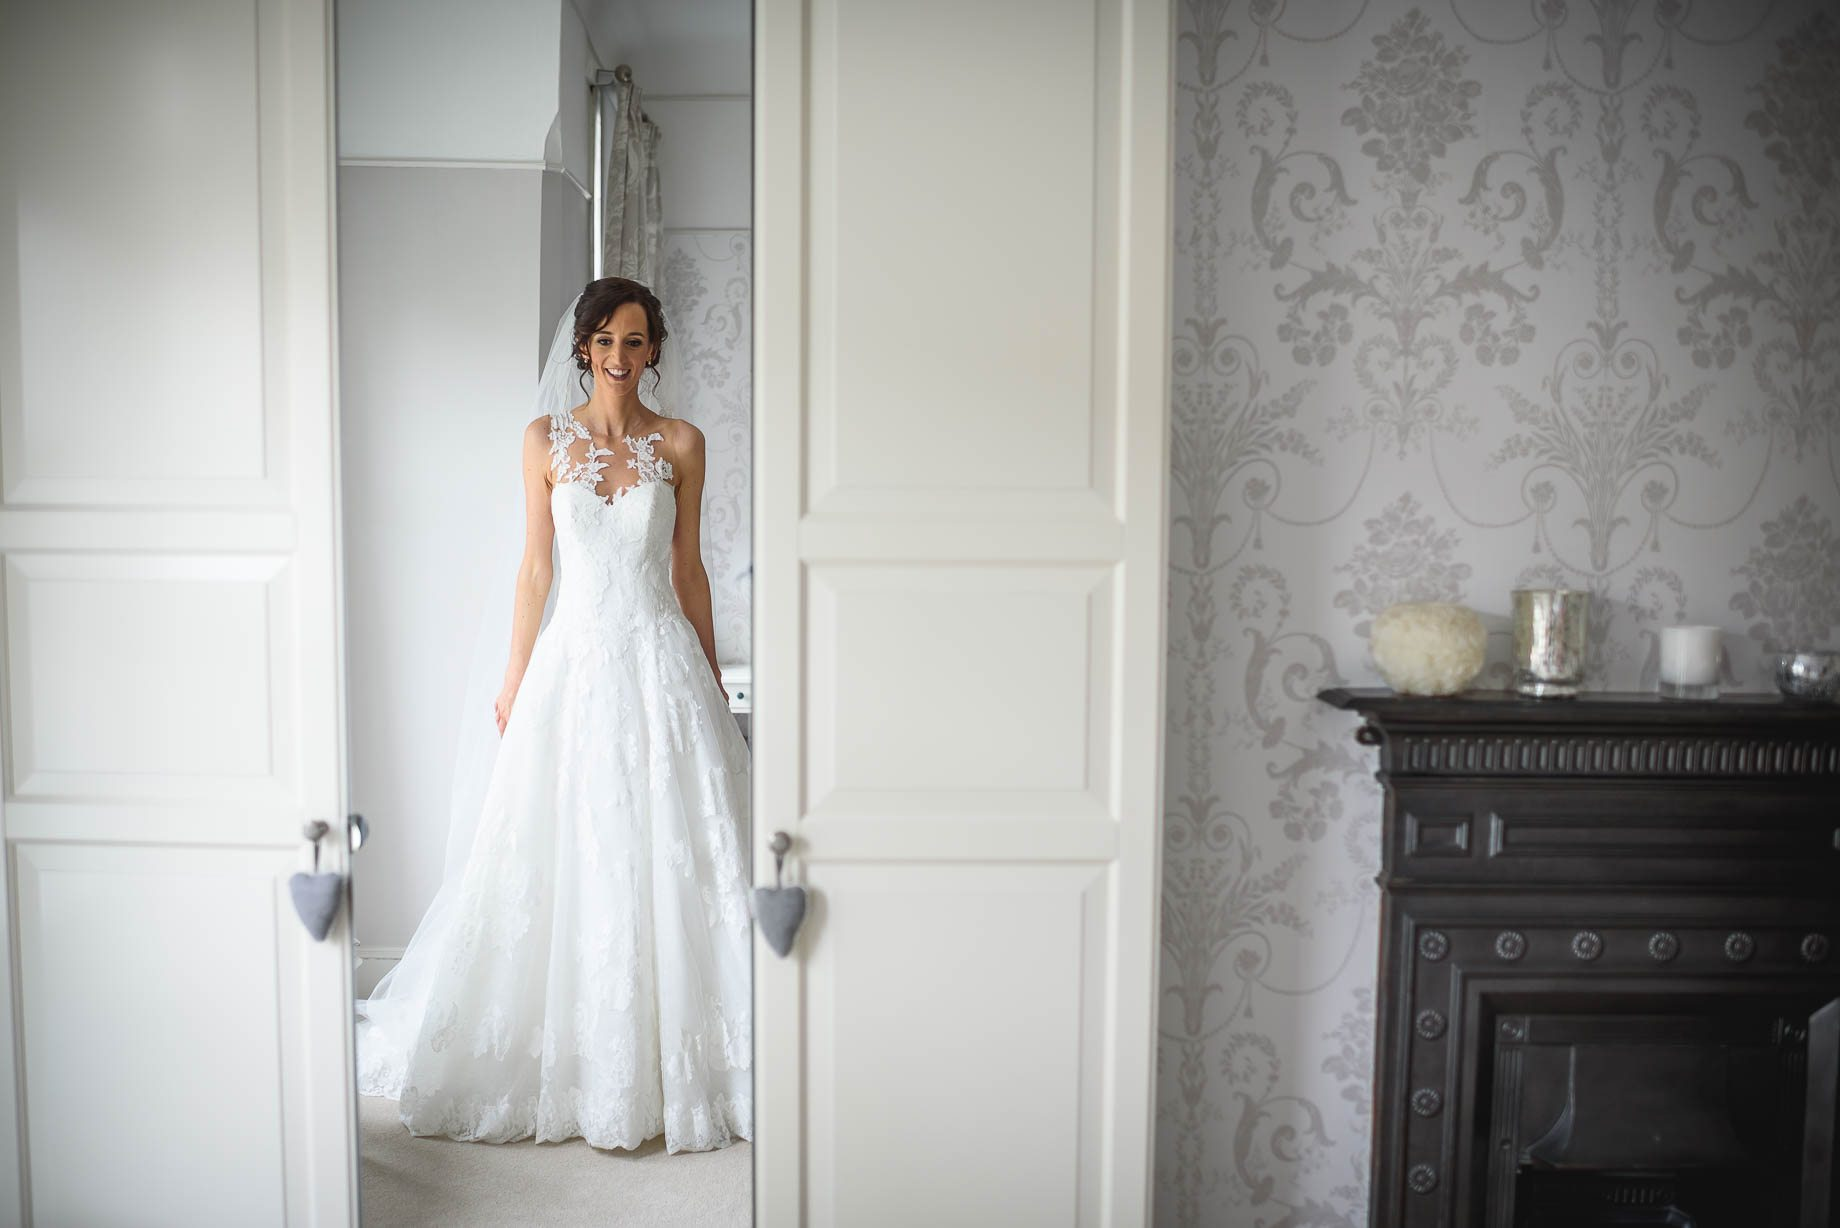 Hertfordshire wedding photography - Sarah and Stephen by Guy Collier Photography (42 of 161)